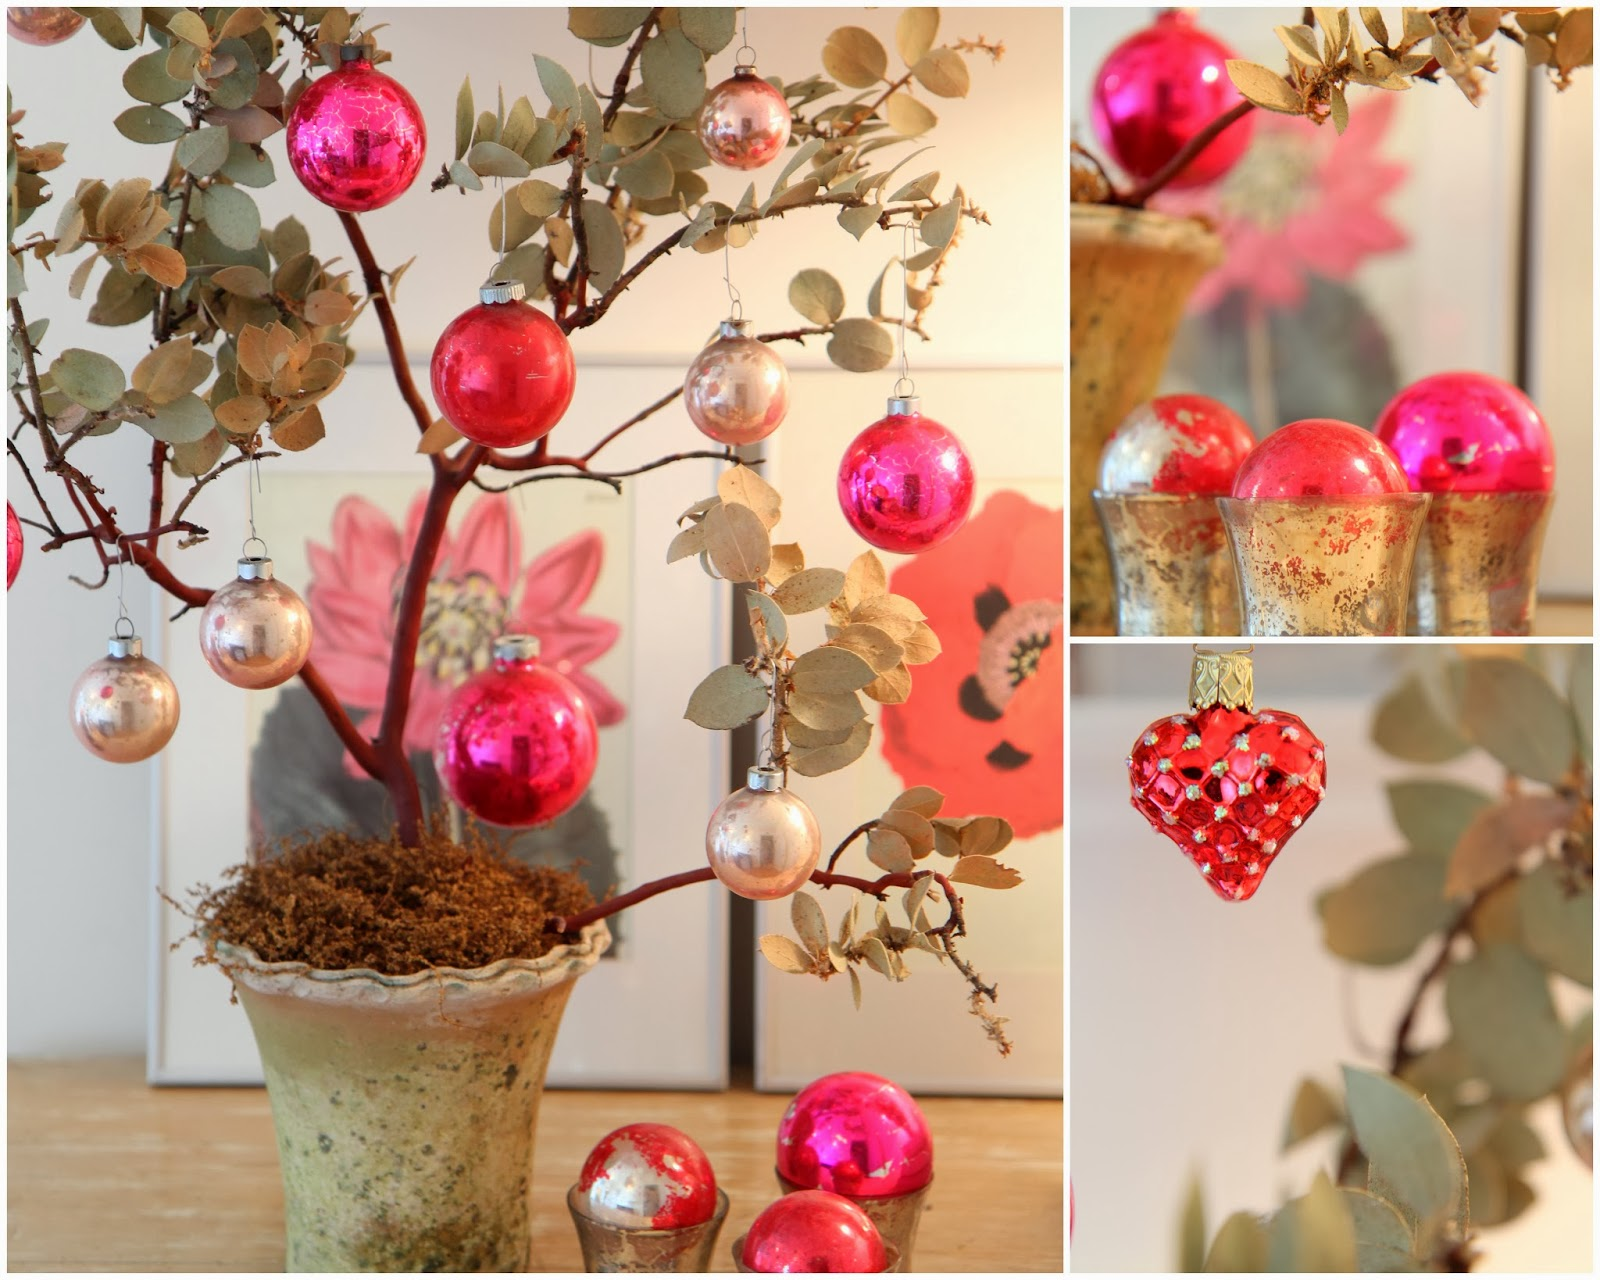 Valentine tree ornaments - Antique Glass Ornaments Bring A Pop Of Pink To My Manzanita Tree To Continue The Theme I Ve Nestled The Ornaments Into Mercury Glass Votive Candles